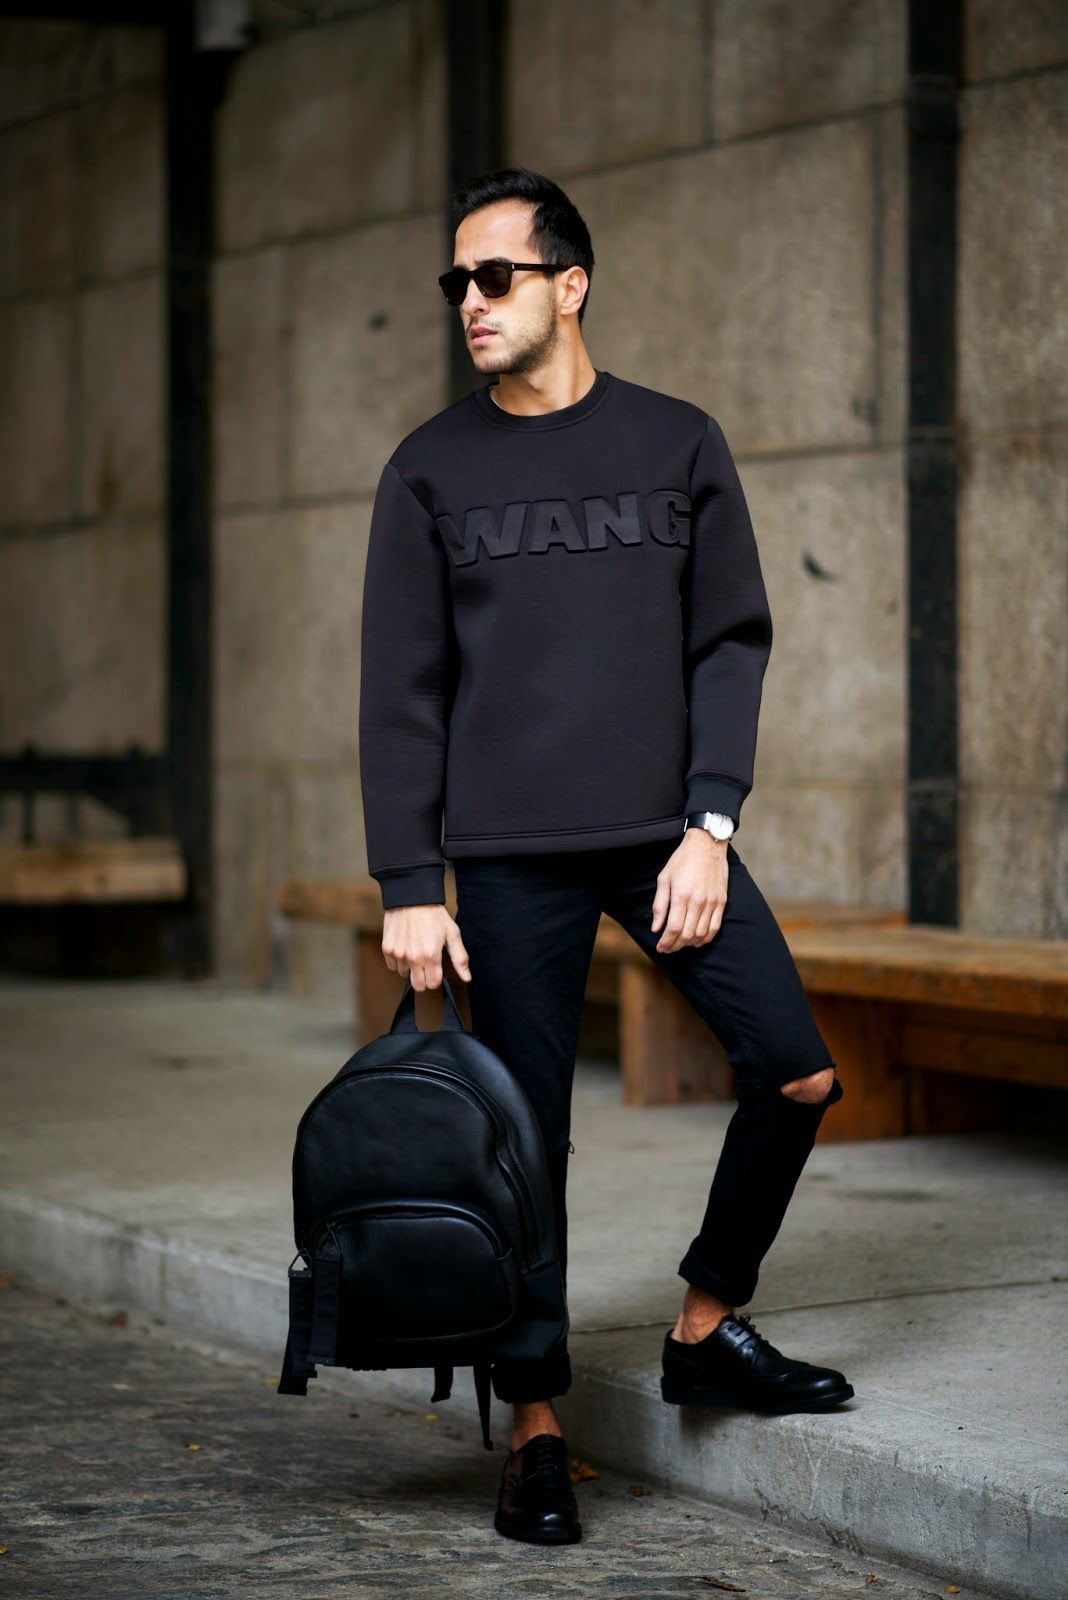 teams a black embossed sweashirt with an edgy backpack for an unmistakably  urban vibe. Alexander Wang x H M. 0e86a60d7e